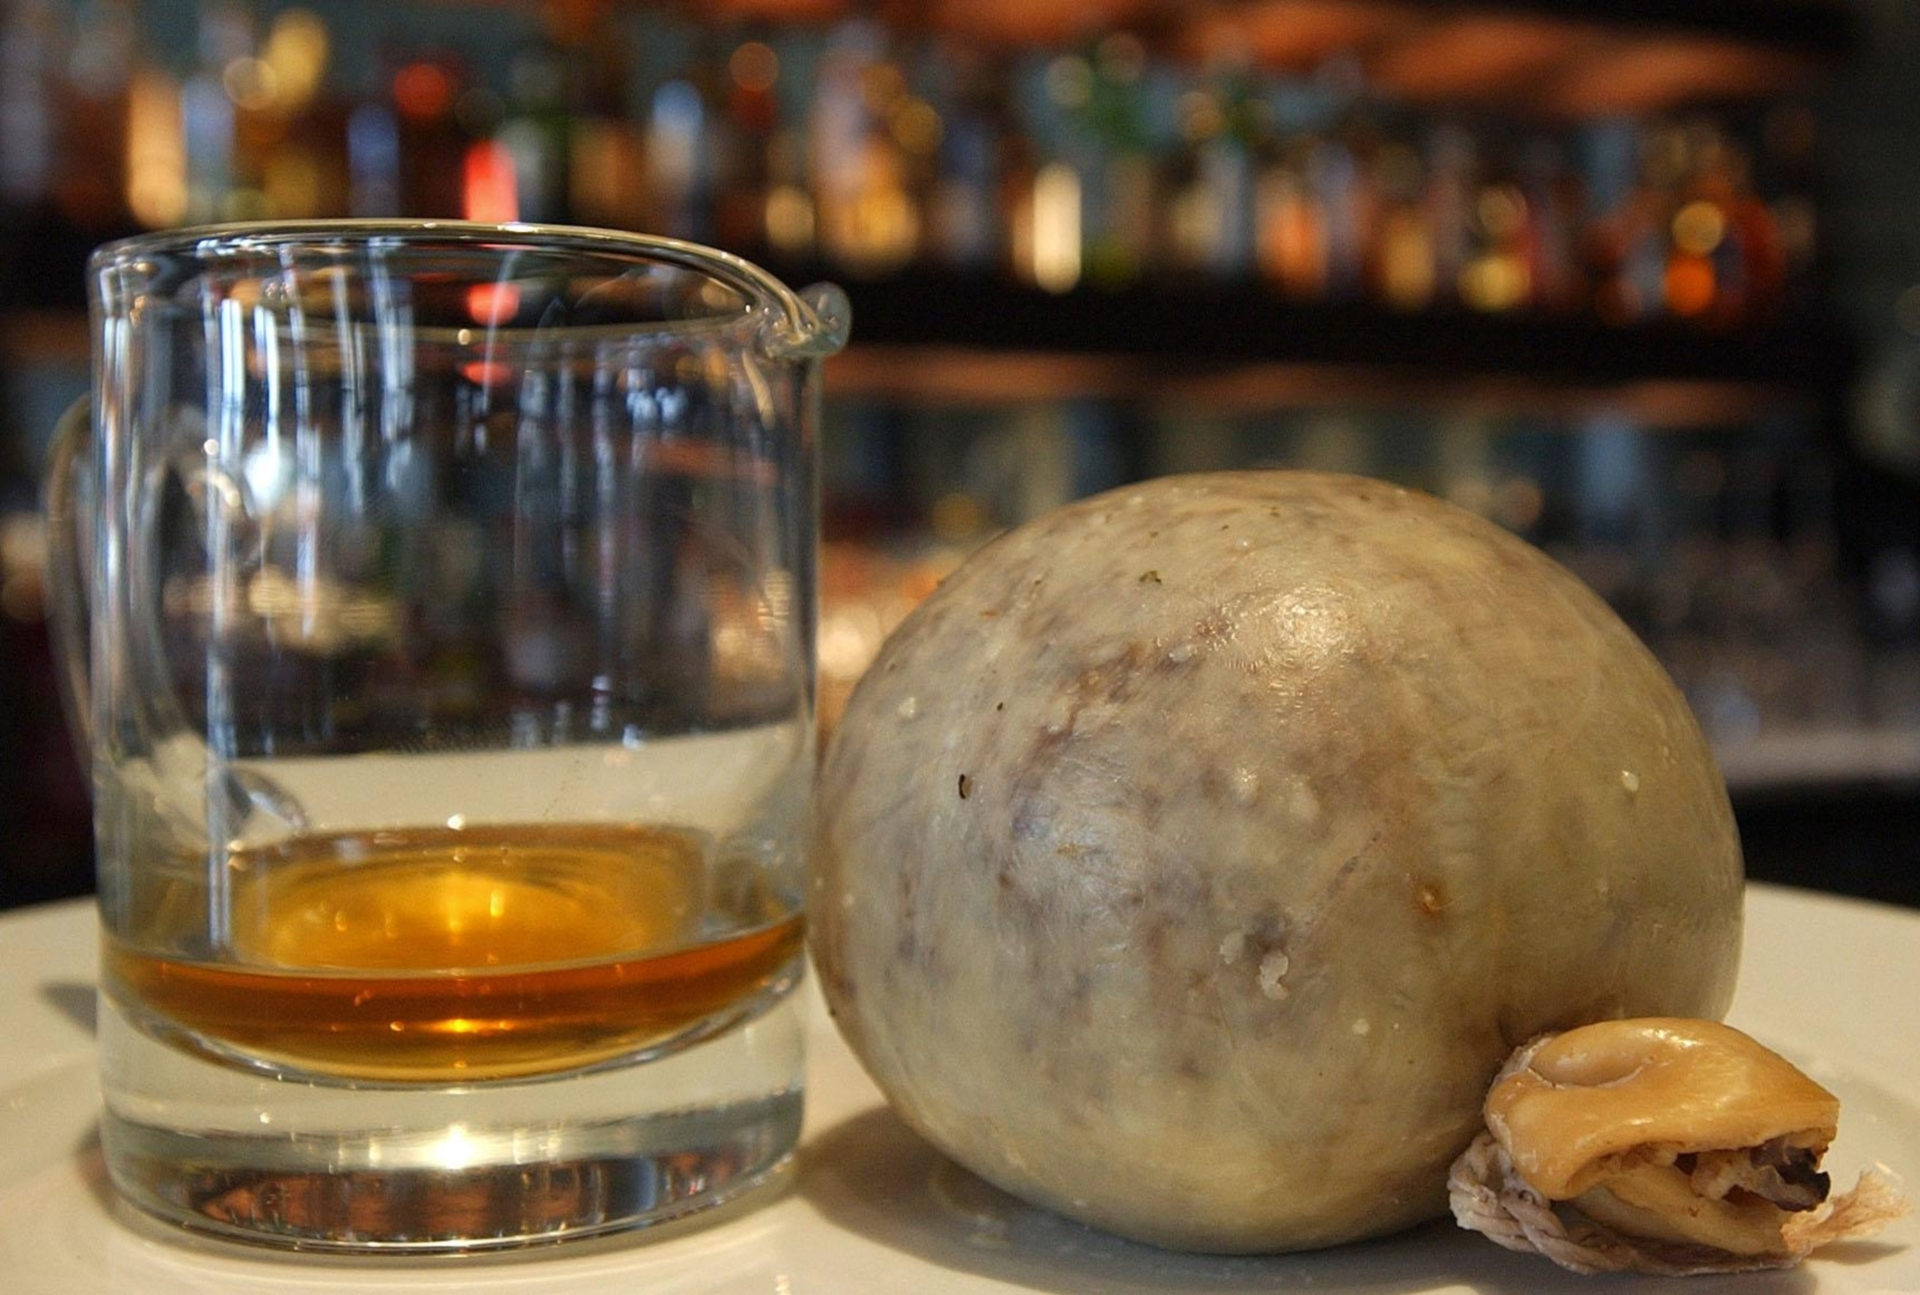 Scottish food and drink The world's most expensive haggis, the Balvenie Cask 191 Haggis created by Scottish chef John Paul McLachlan, and worth £2500, sits beside a dram of Whisky to mark Burn's night.